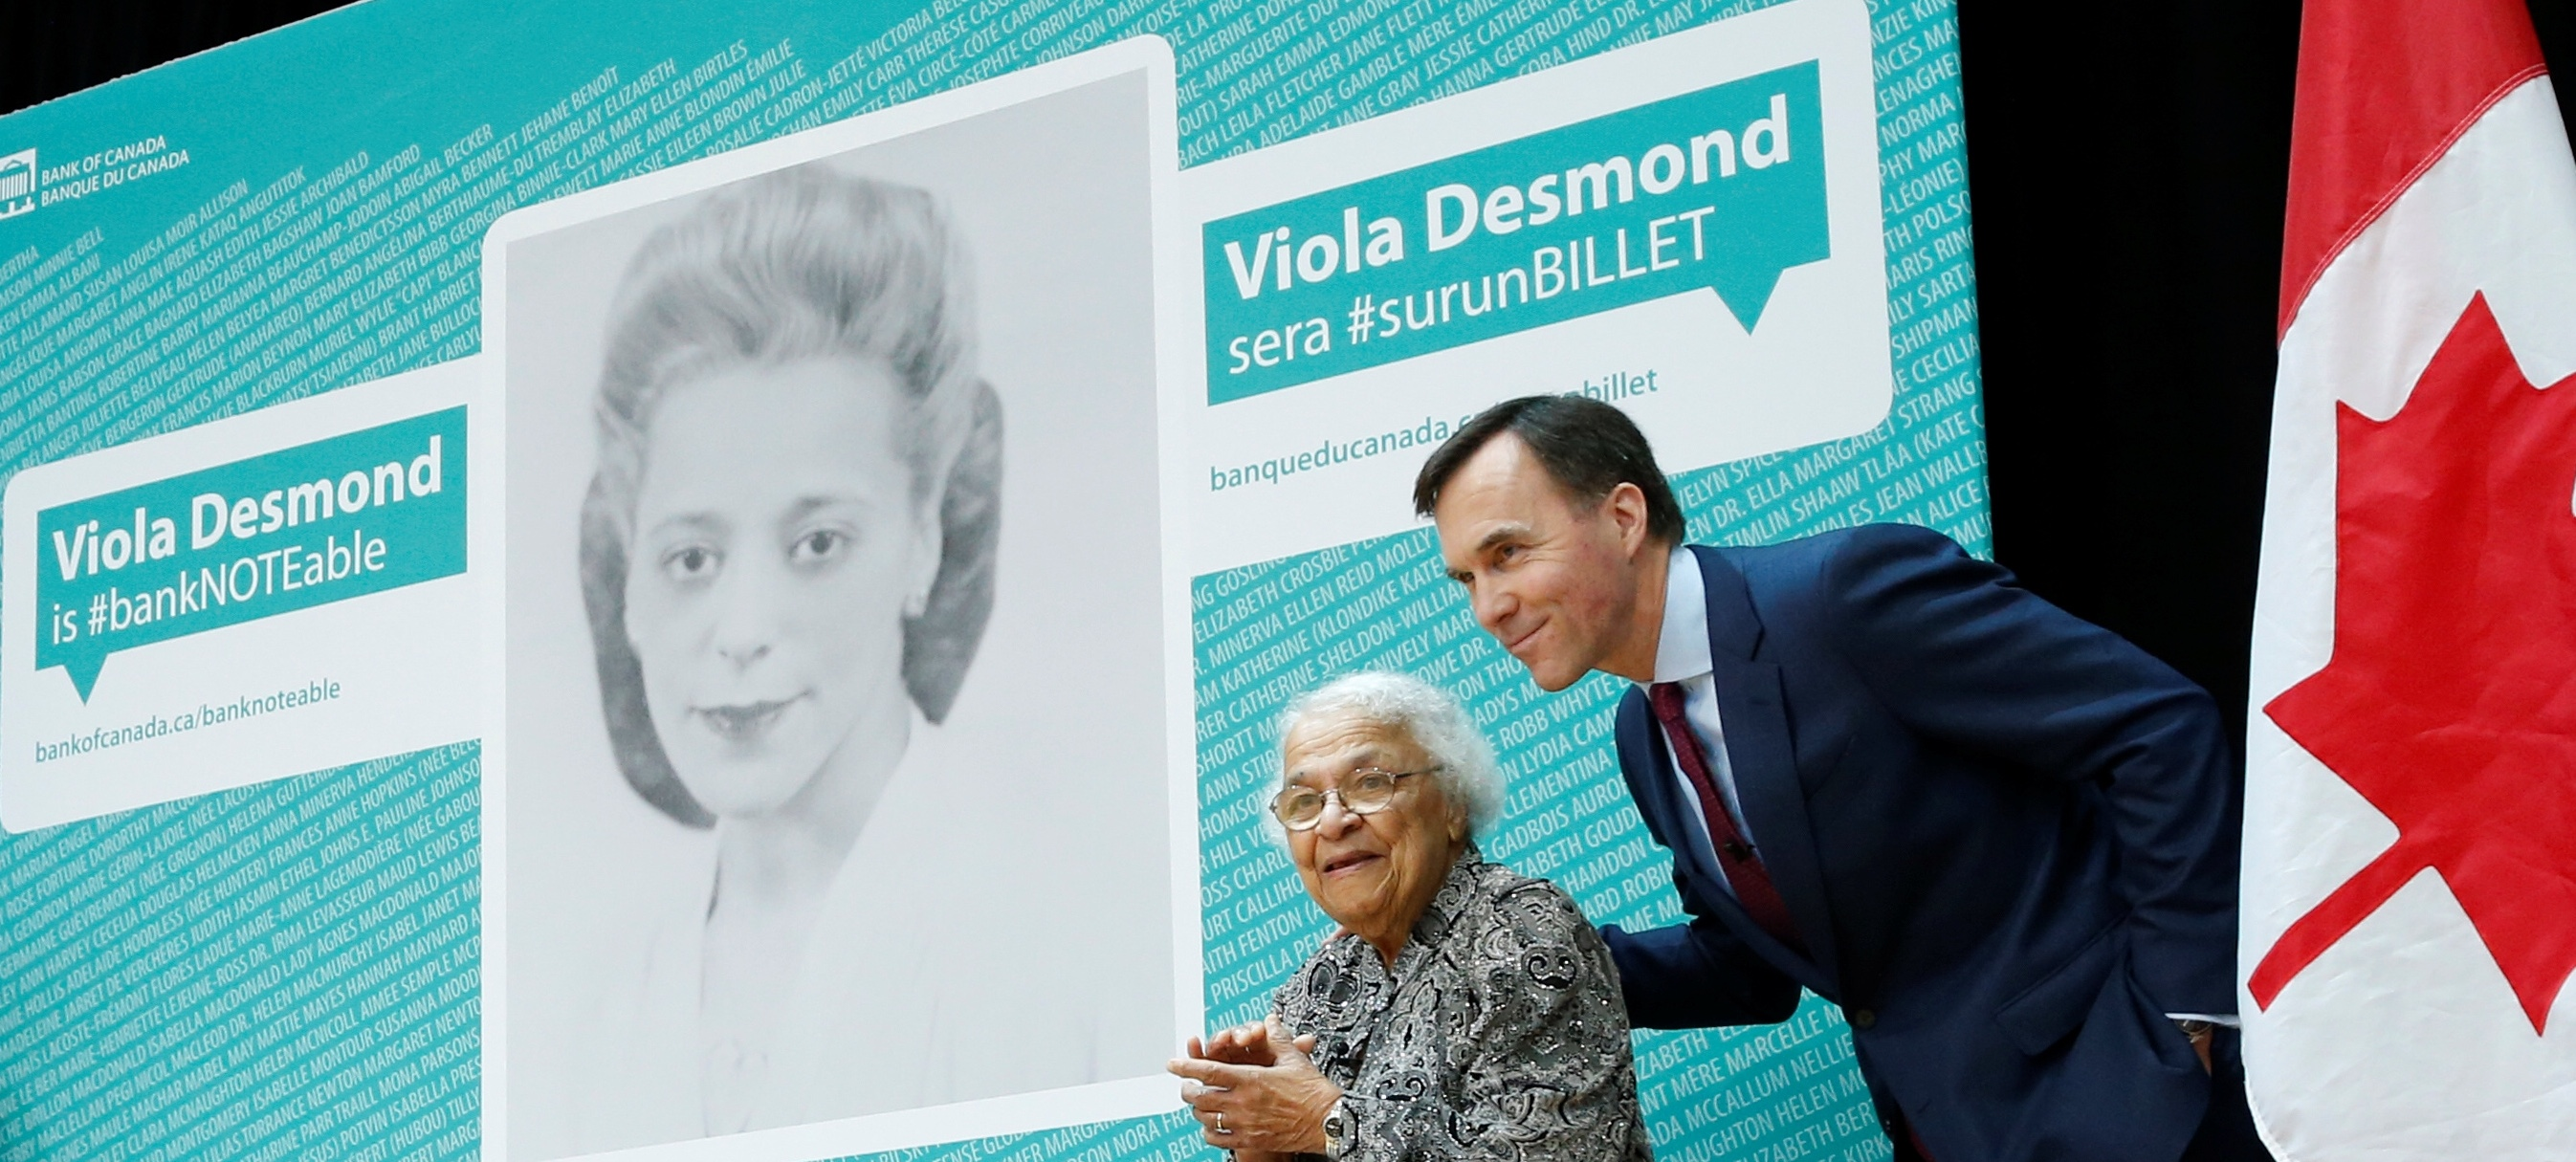 Canada's Finance Minister Bill Morneau stands with Wanda Robson after her sister Viola Desmond was chosen to be featured on a new $10 bank note during a ceremony at the Museum of History in Gatineau, Quebec, Canada, December 8, 2016. REUTERS/Chris Wattie - RC1AA8CBDF00